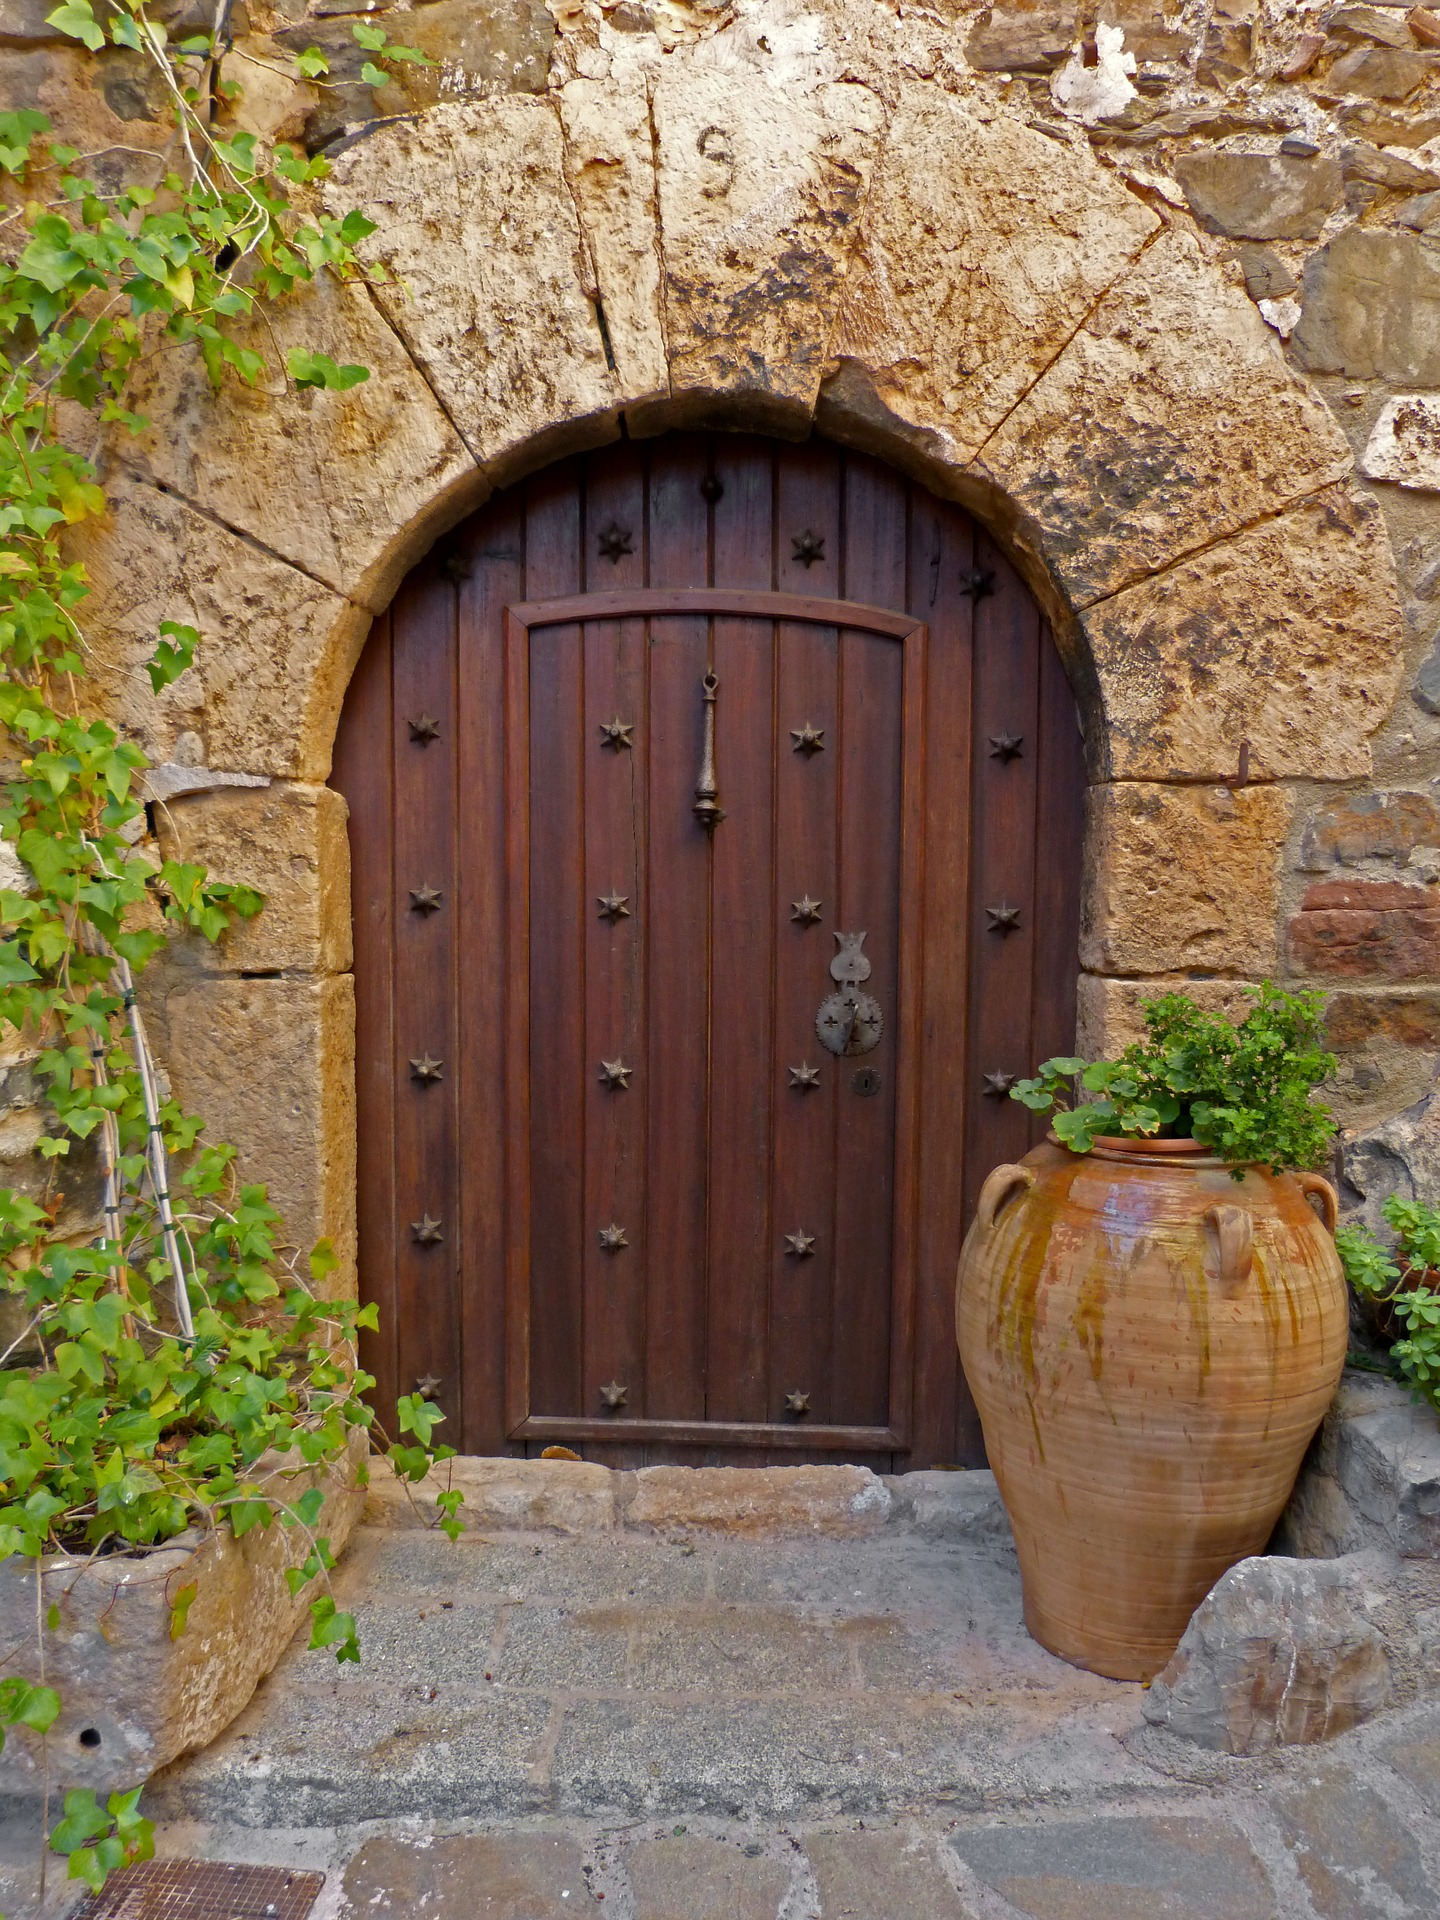 Le Meilleur Old Doors The Good The Bad And The *Gly Countertop Garden Ce Mois Ci